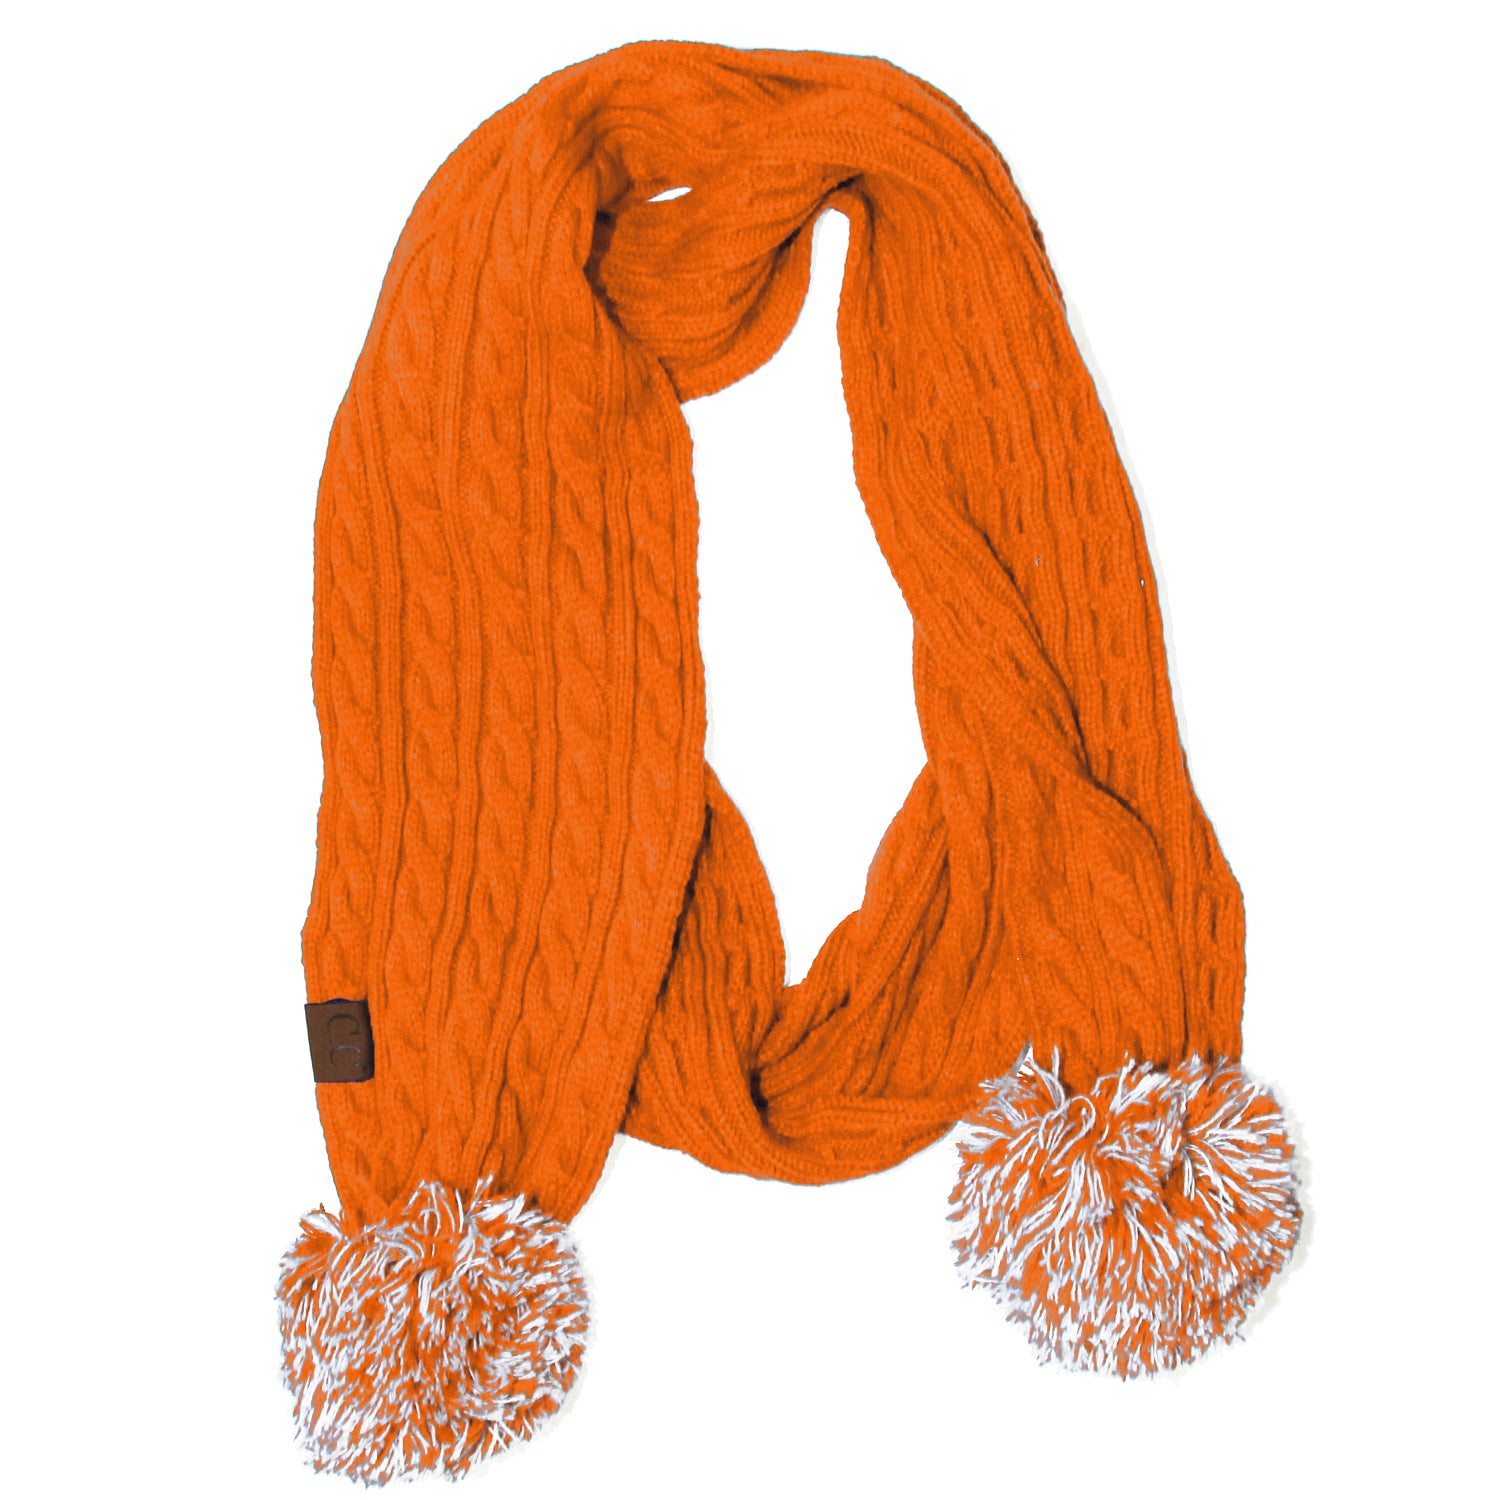 SK-56-8 Bright Orange Team Pom-Pom Scarf